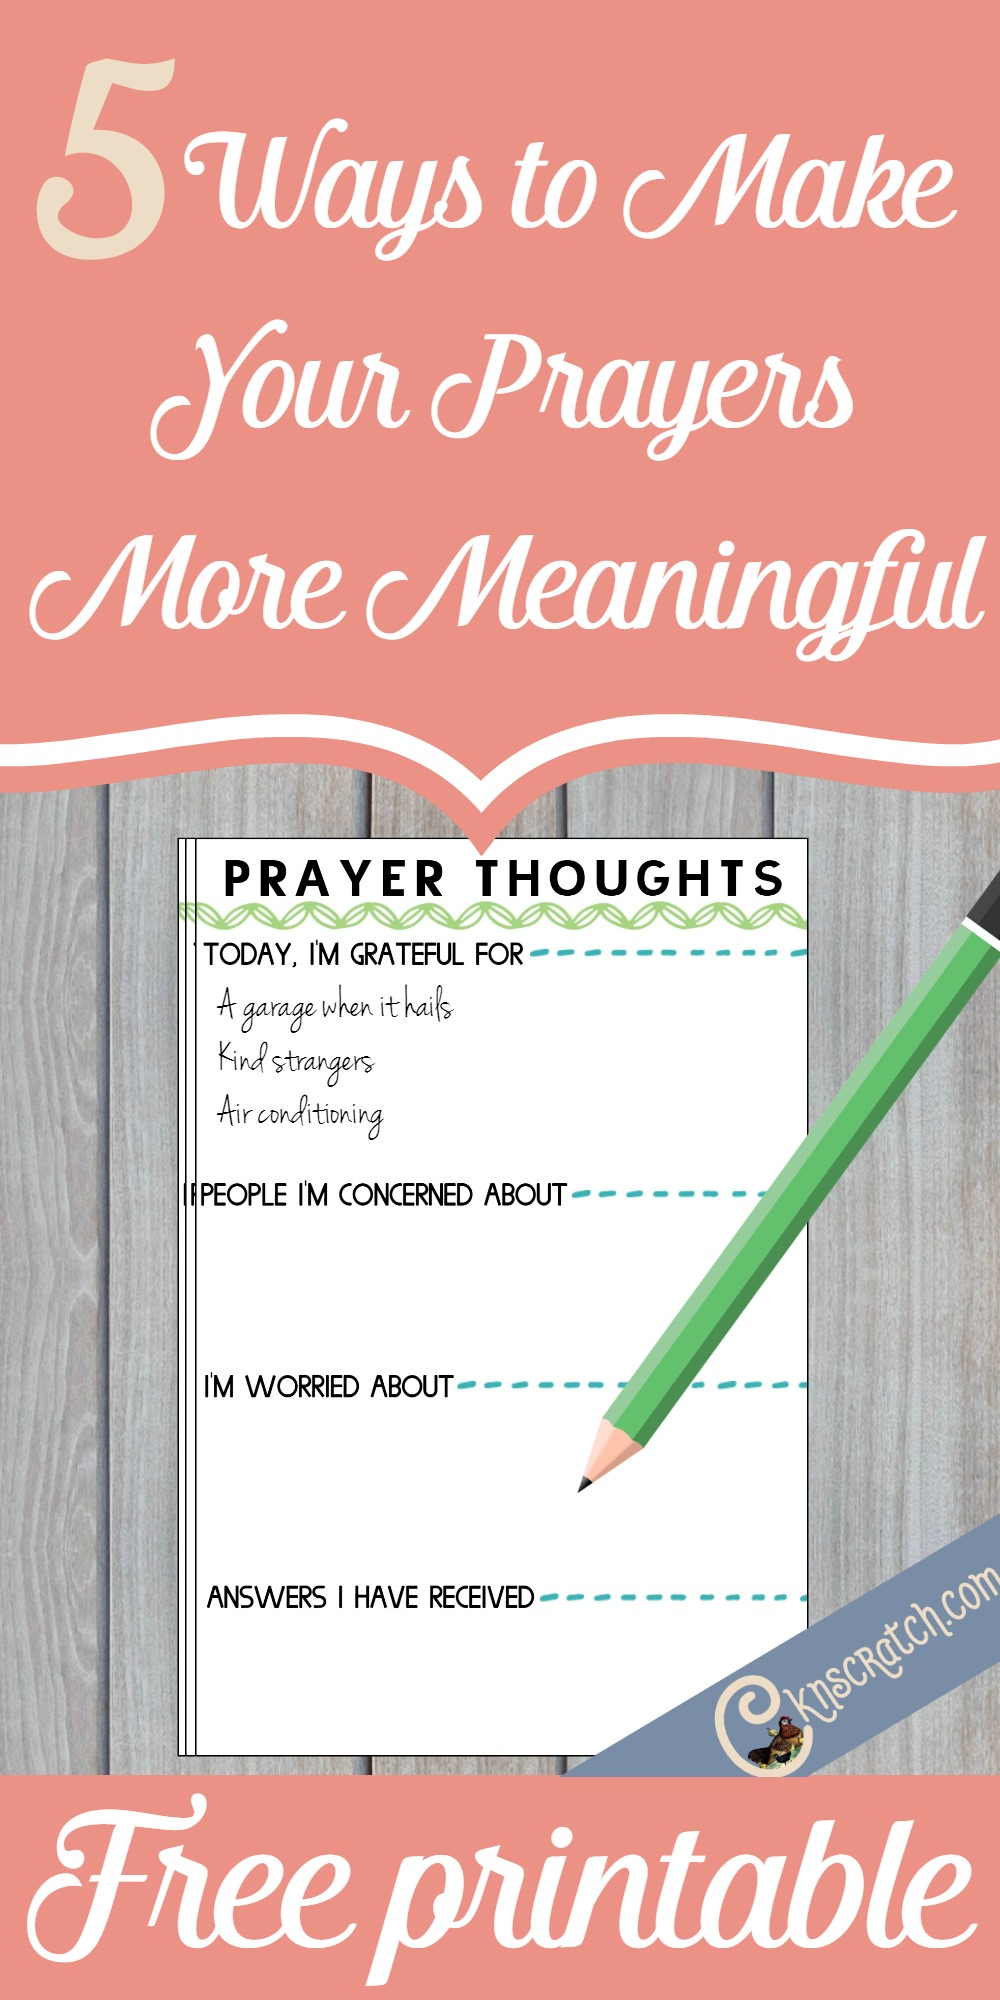 Great ideas for how to make your prayers more meaningful but free printable